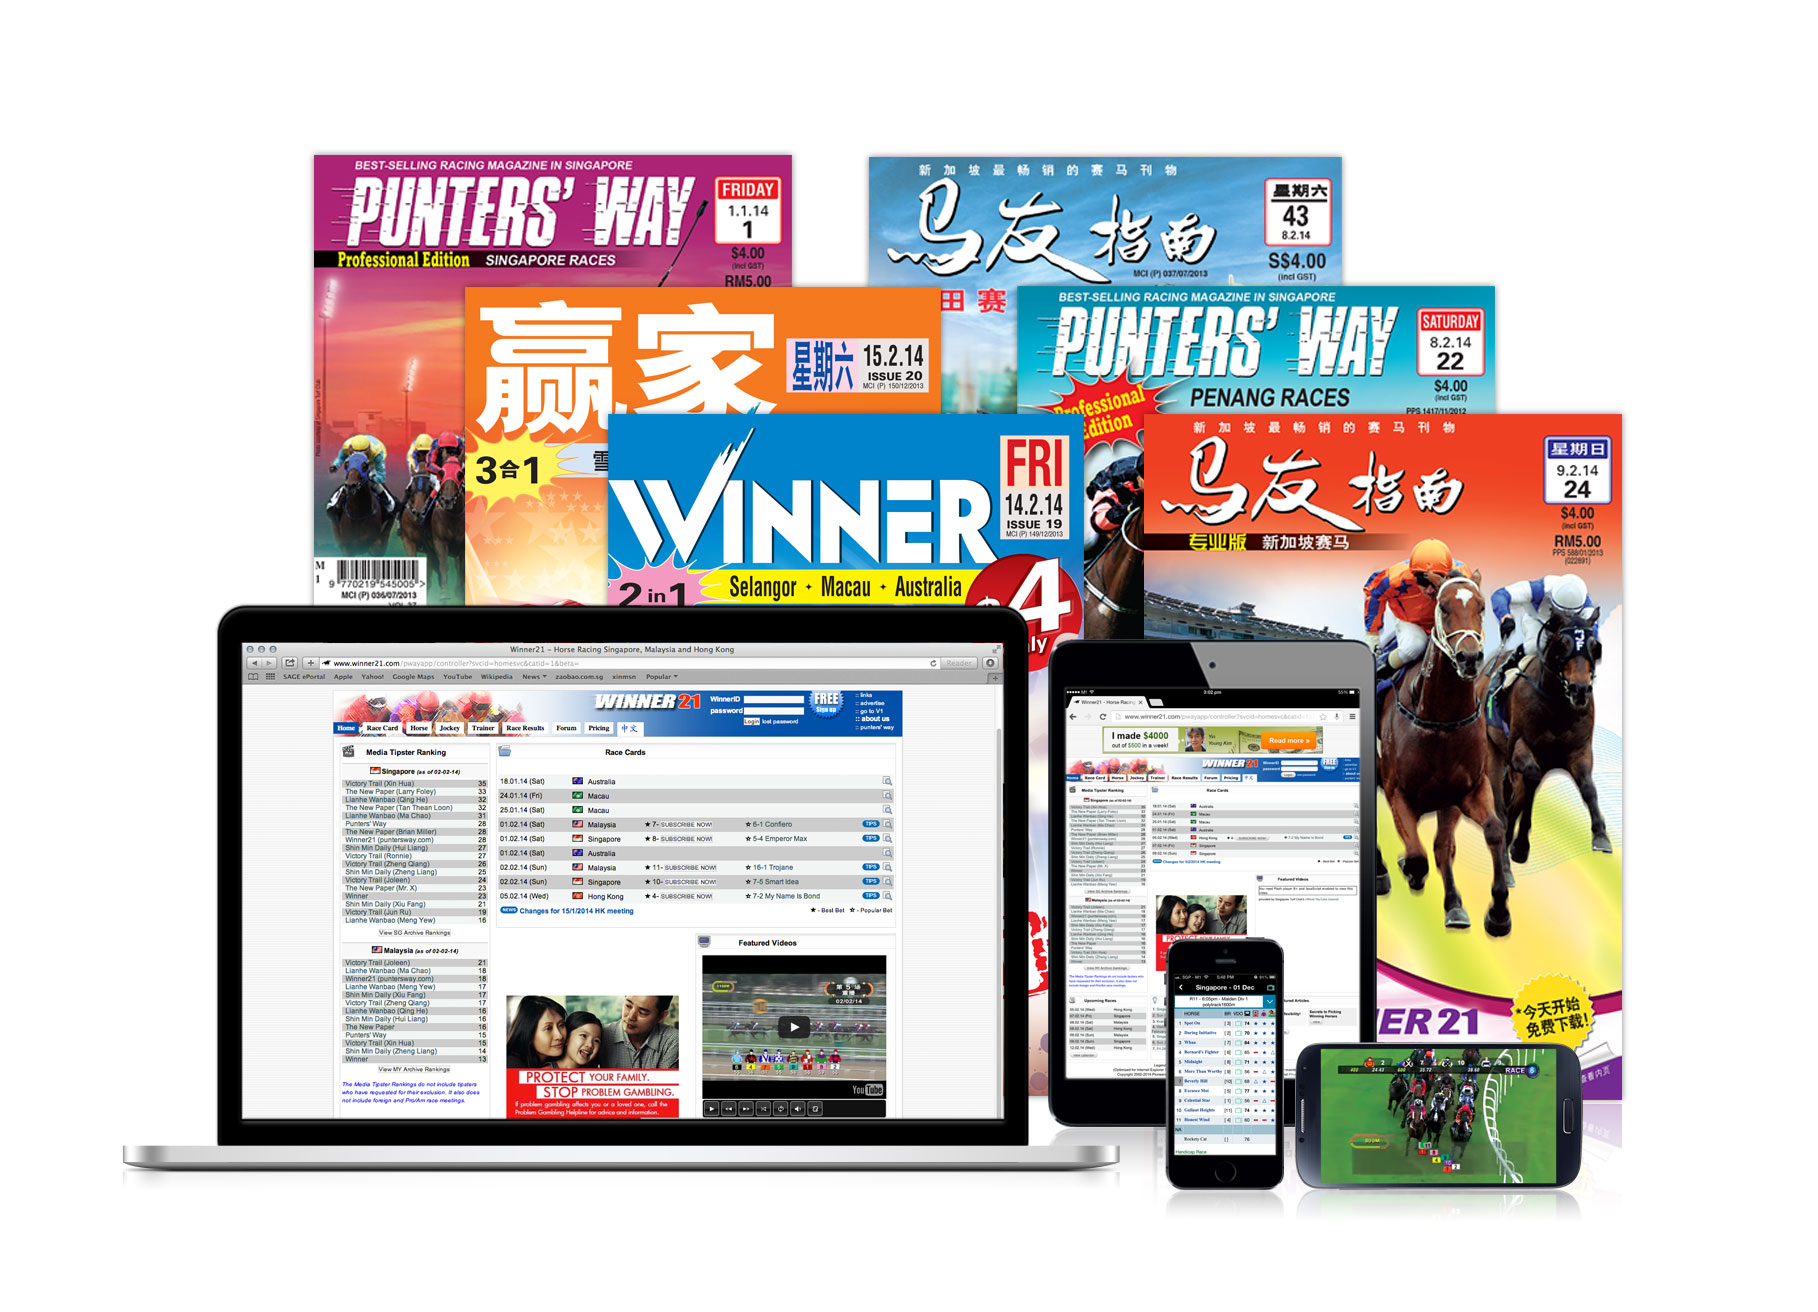 The Punters' Way Product Line - providing timely racing information from Singapore, Hong Kong, Malaysia, Australia, Korea, South Africa and more! A Century-old industry undergoes technological evolution – our  www.winner21.com  website and even more importantly, the popular Winner21 App.